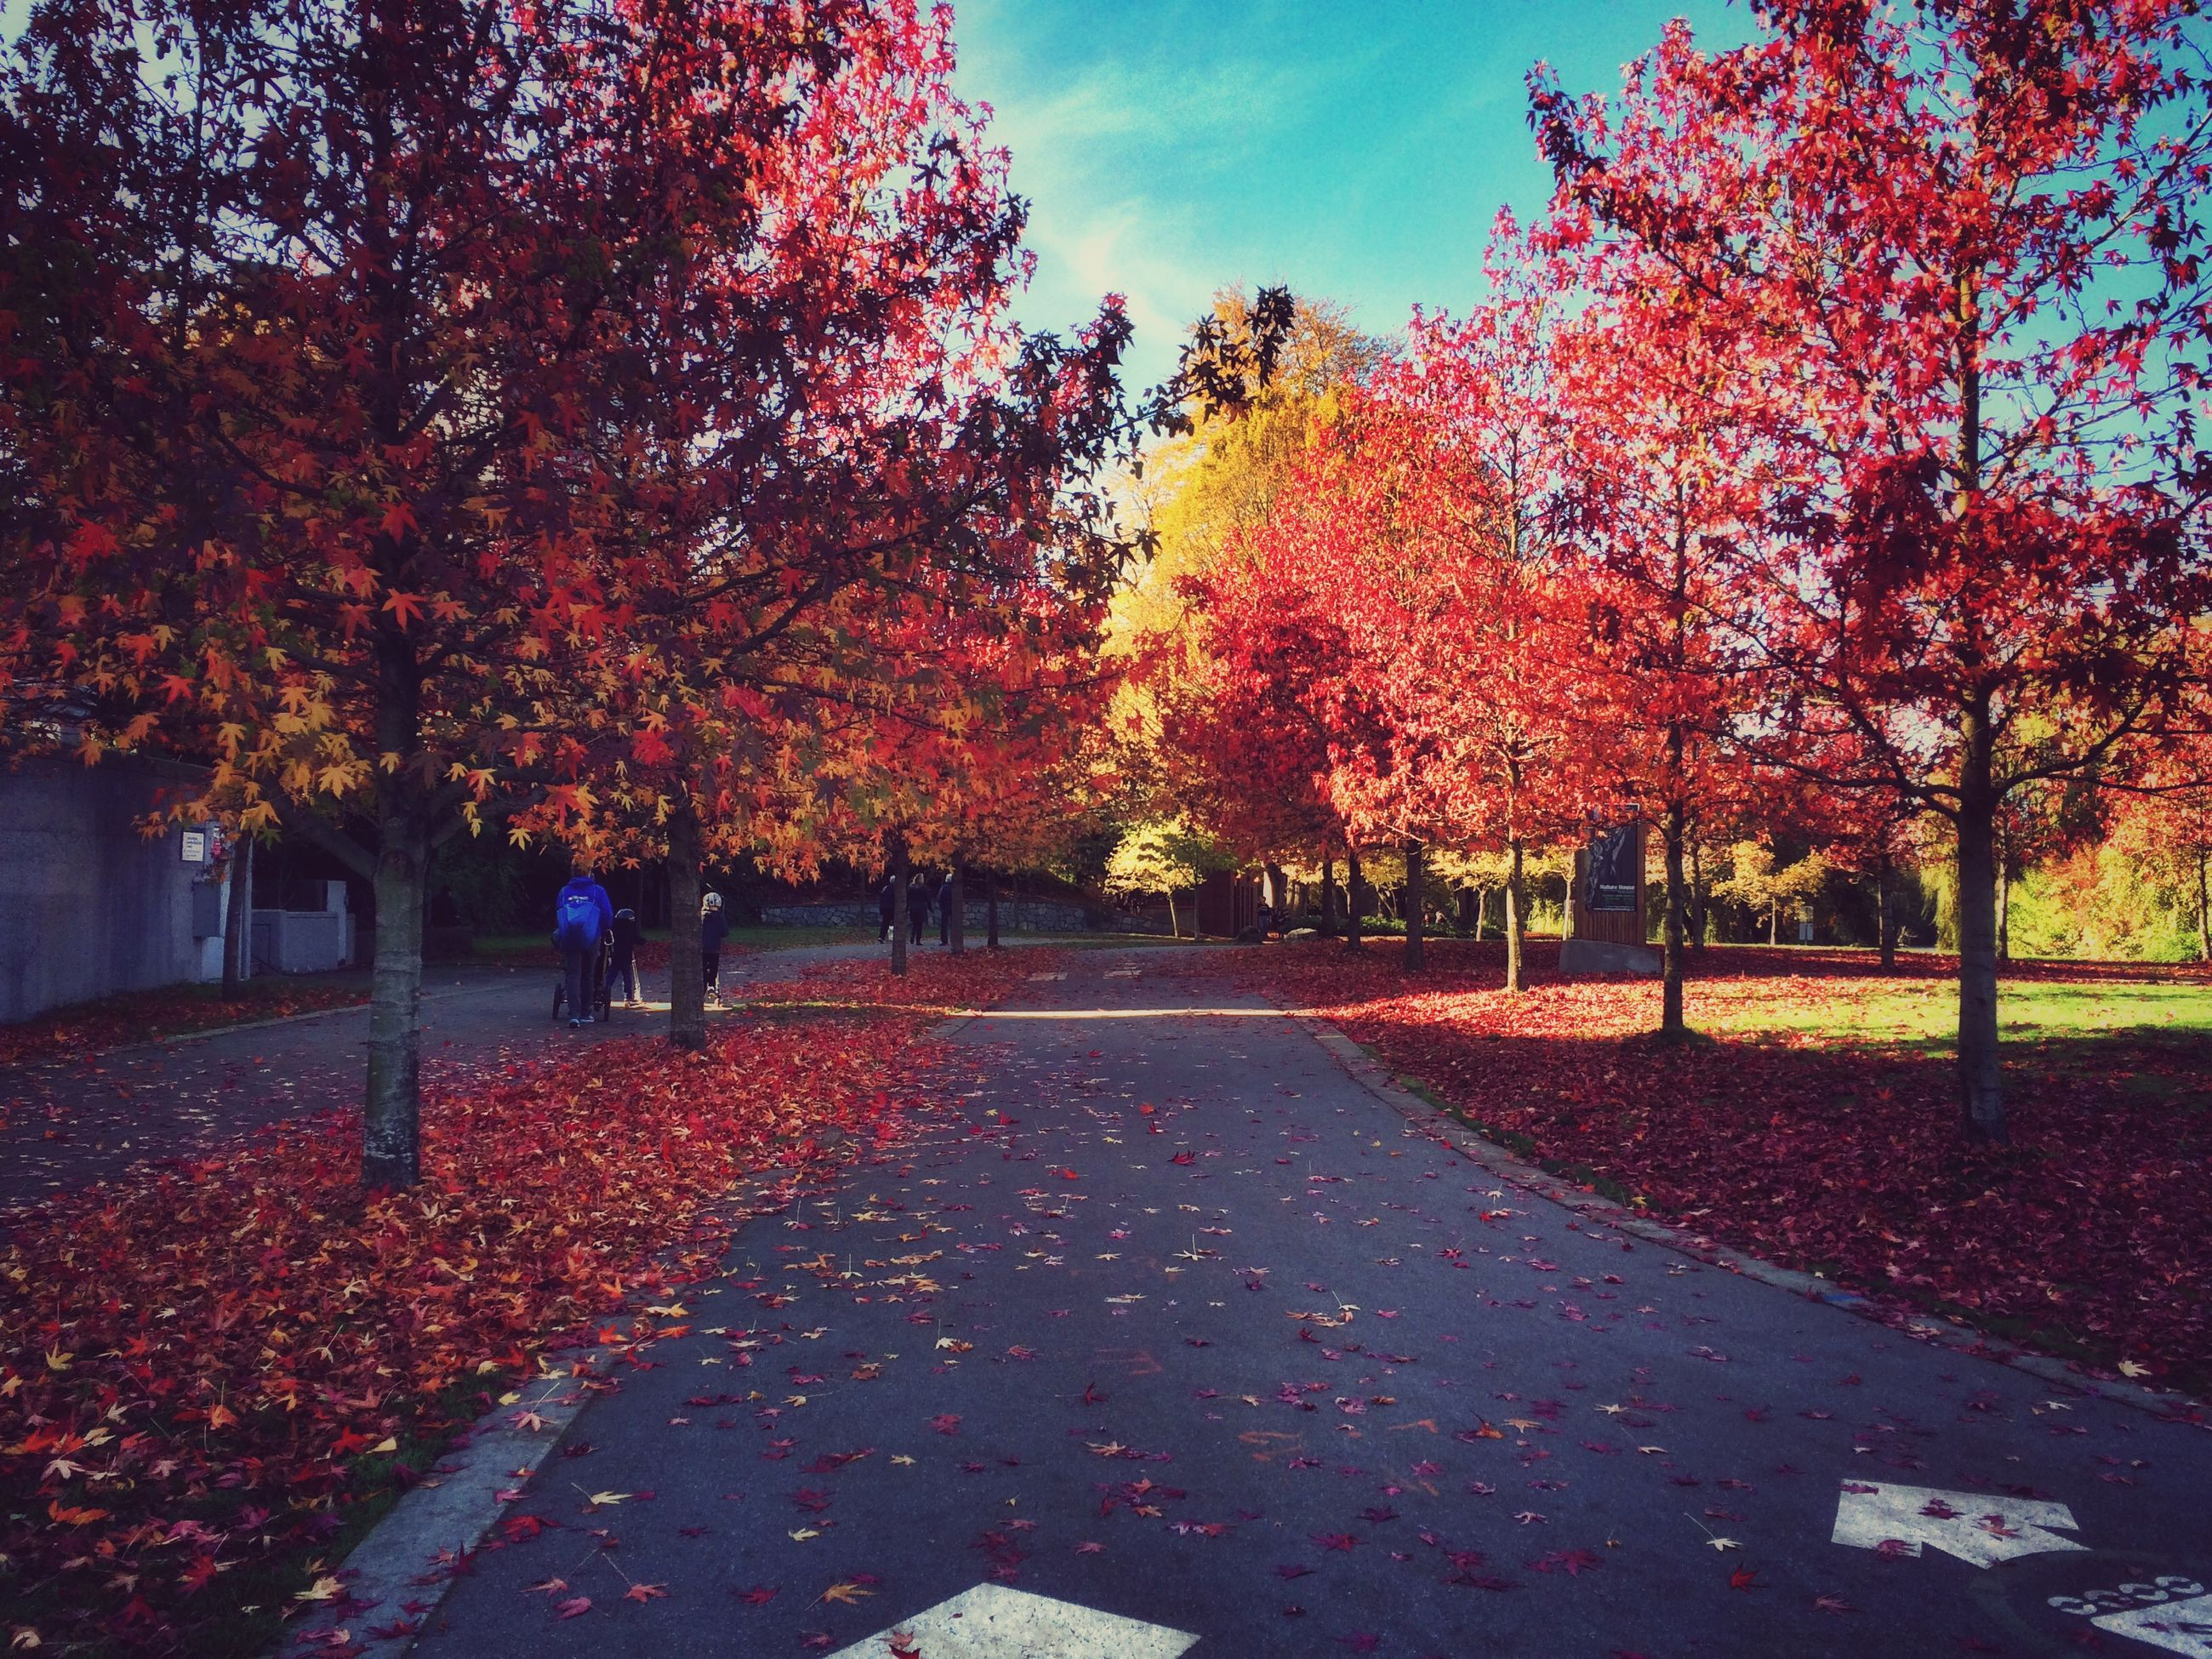 autumn, change, tree, season, the way forward, orange color, nature, leaf, sky, road, beauty in nature, diminishing perspective, park - man made space, tranquility, growth, street, footpath, branch, fallen, treelined